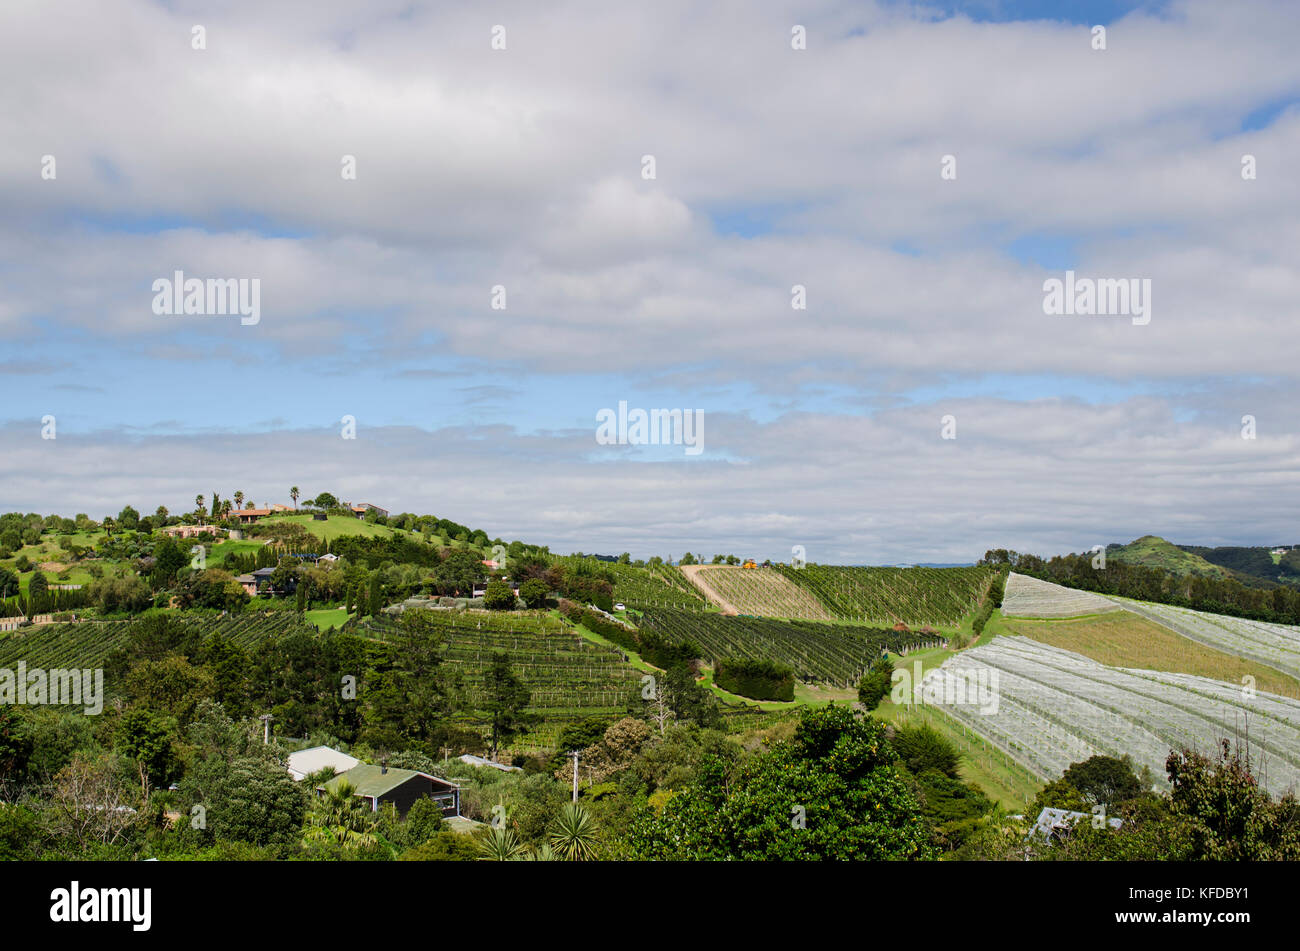 Onetangi vineyard valley in Waiheke Island, Hauraki gulf, New Zealand - Stock Image